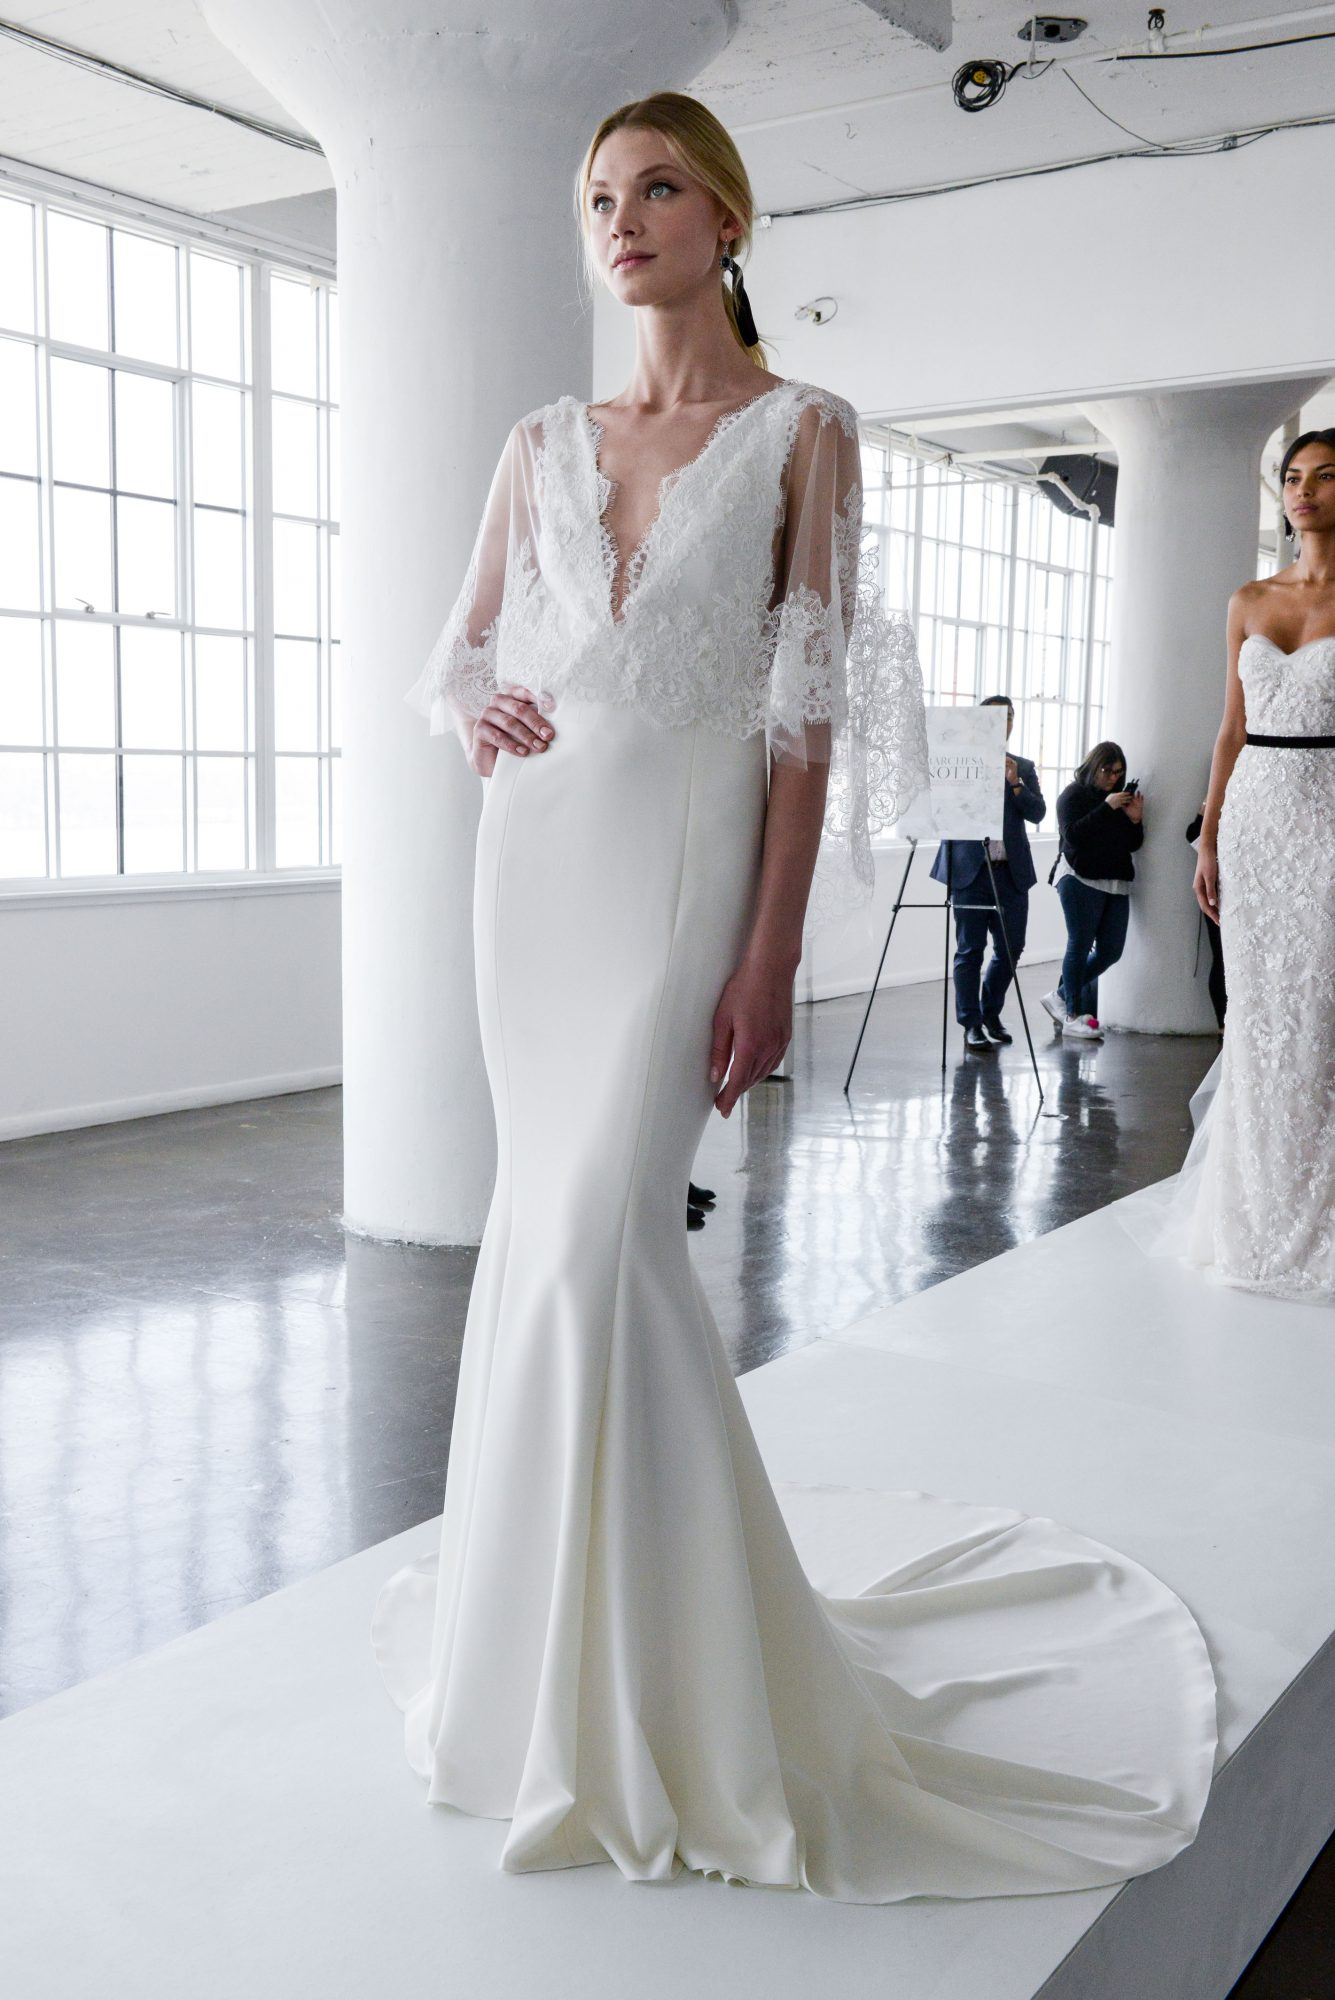 marchesa spring 2018 wedding dress with lace bodice and v-neckline